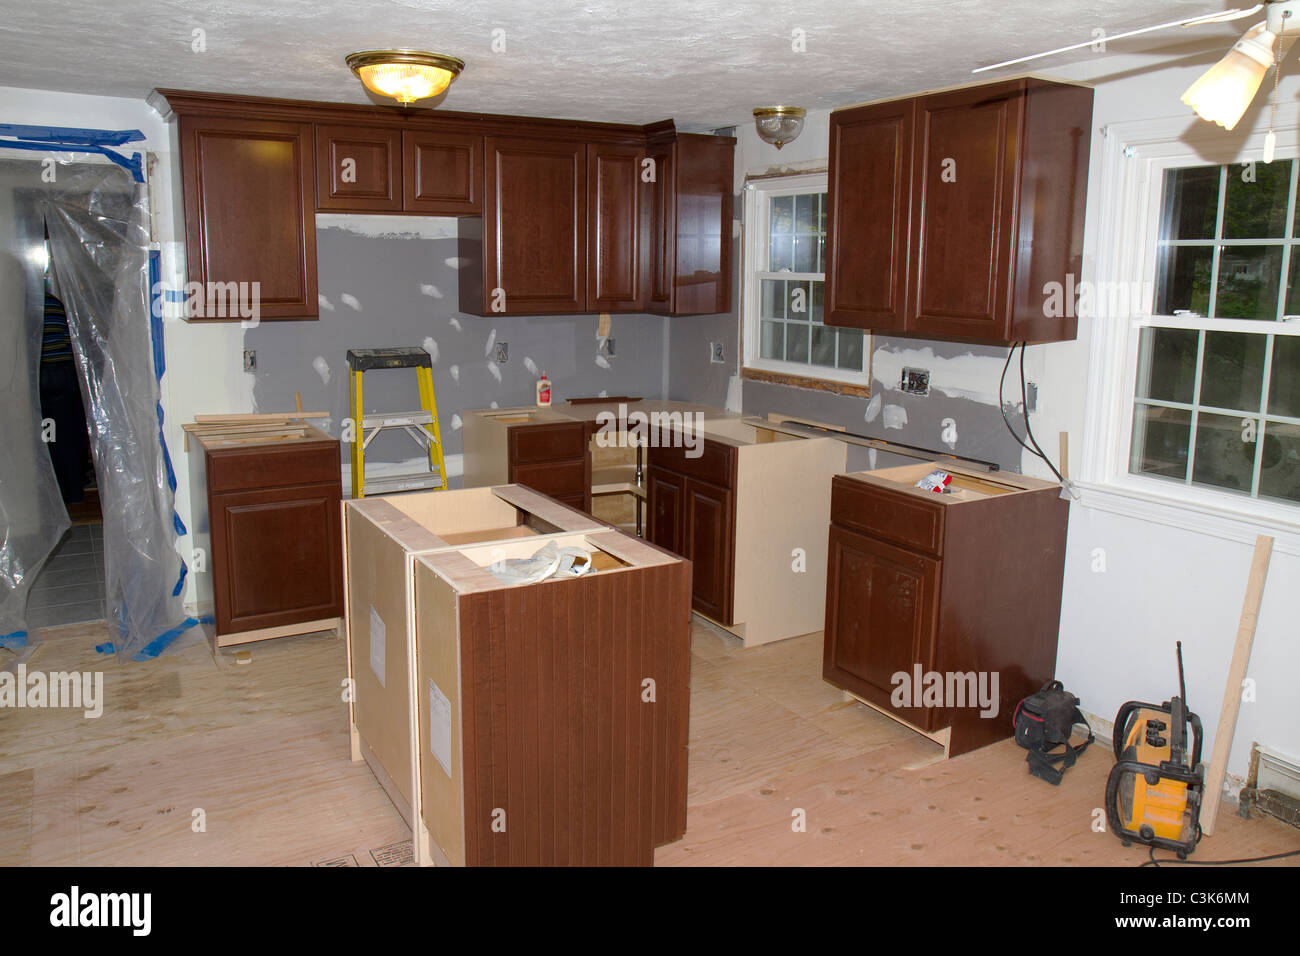 1960 39 s style american home kitchen during remodeling new for 1960 kitchen cabinets